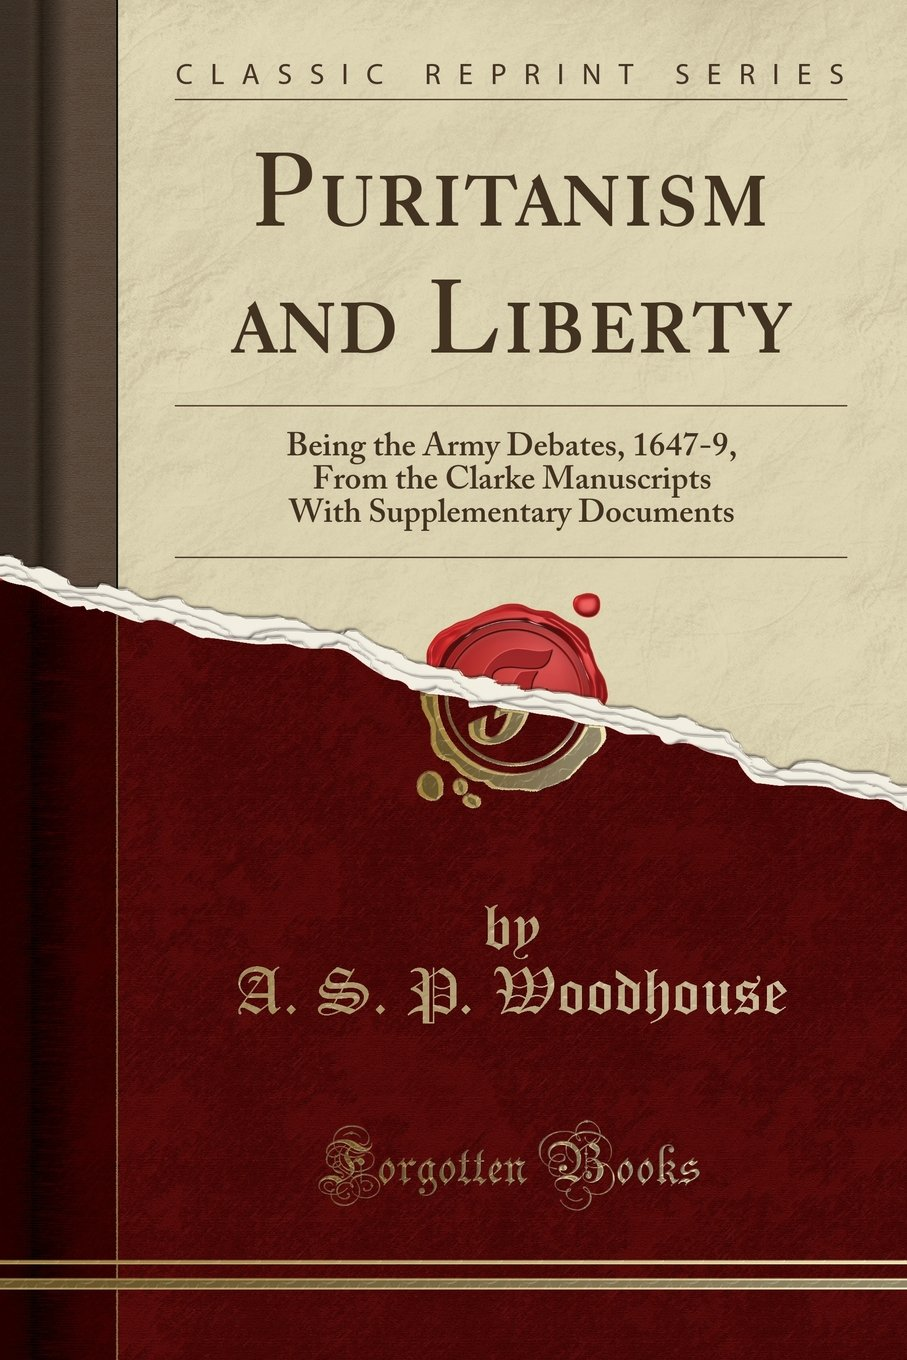 Puritanism and Liberty: Being the Army Debates, 1647-9, From the Clarke Manuscripts With Supplementary Documents (Classic Reprint) pdf epub